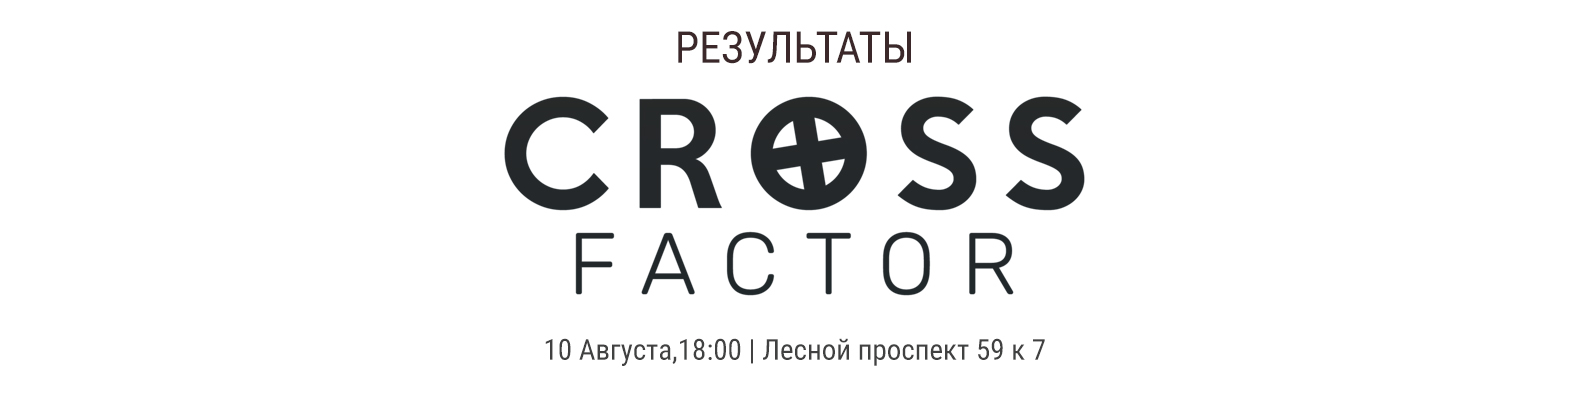 Результаты шоу NSW Cross Factor (10/08)